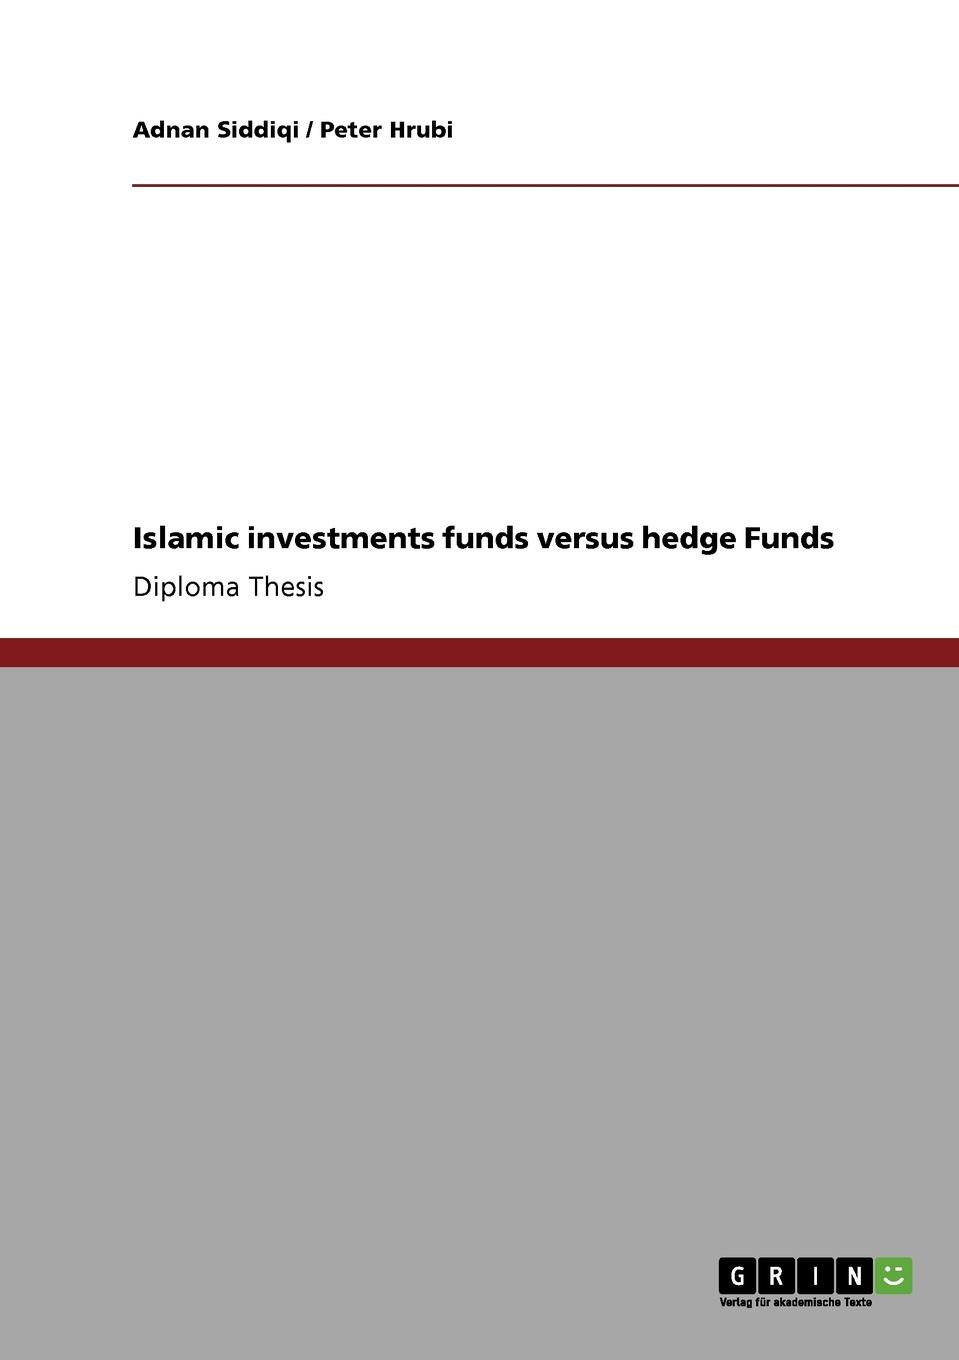 Adnan Siddiqi, Peter Hrubi Islamic investments funds versus hedge Funds adam zoia getting a job in hedge funds an inside look at how funds hire